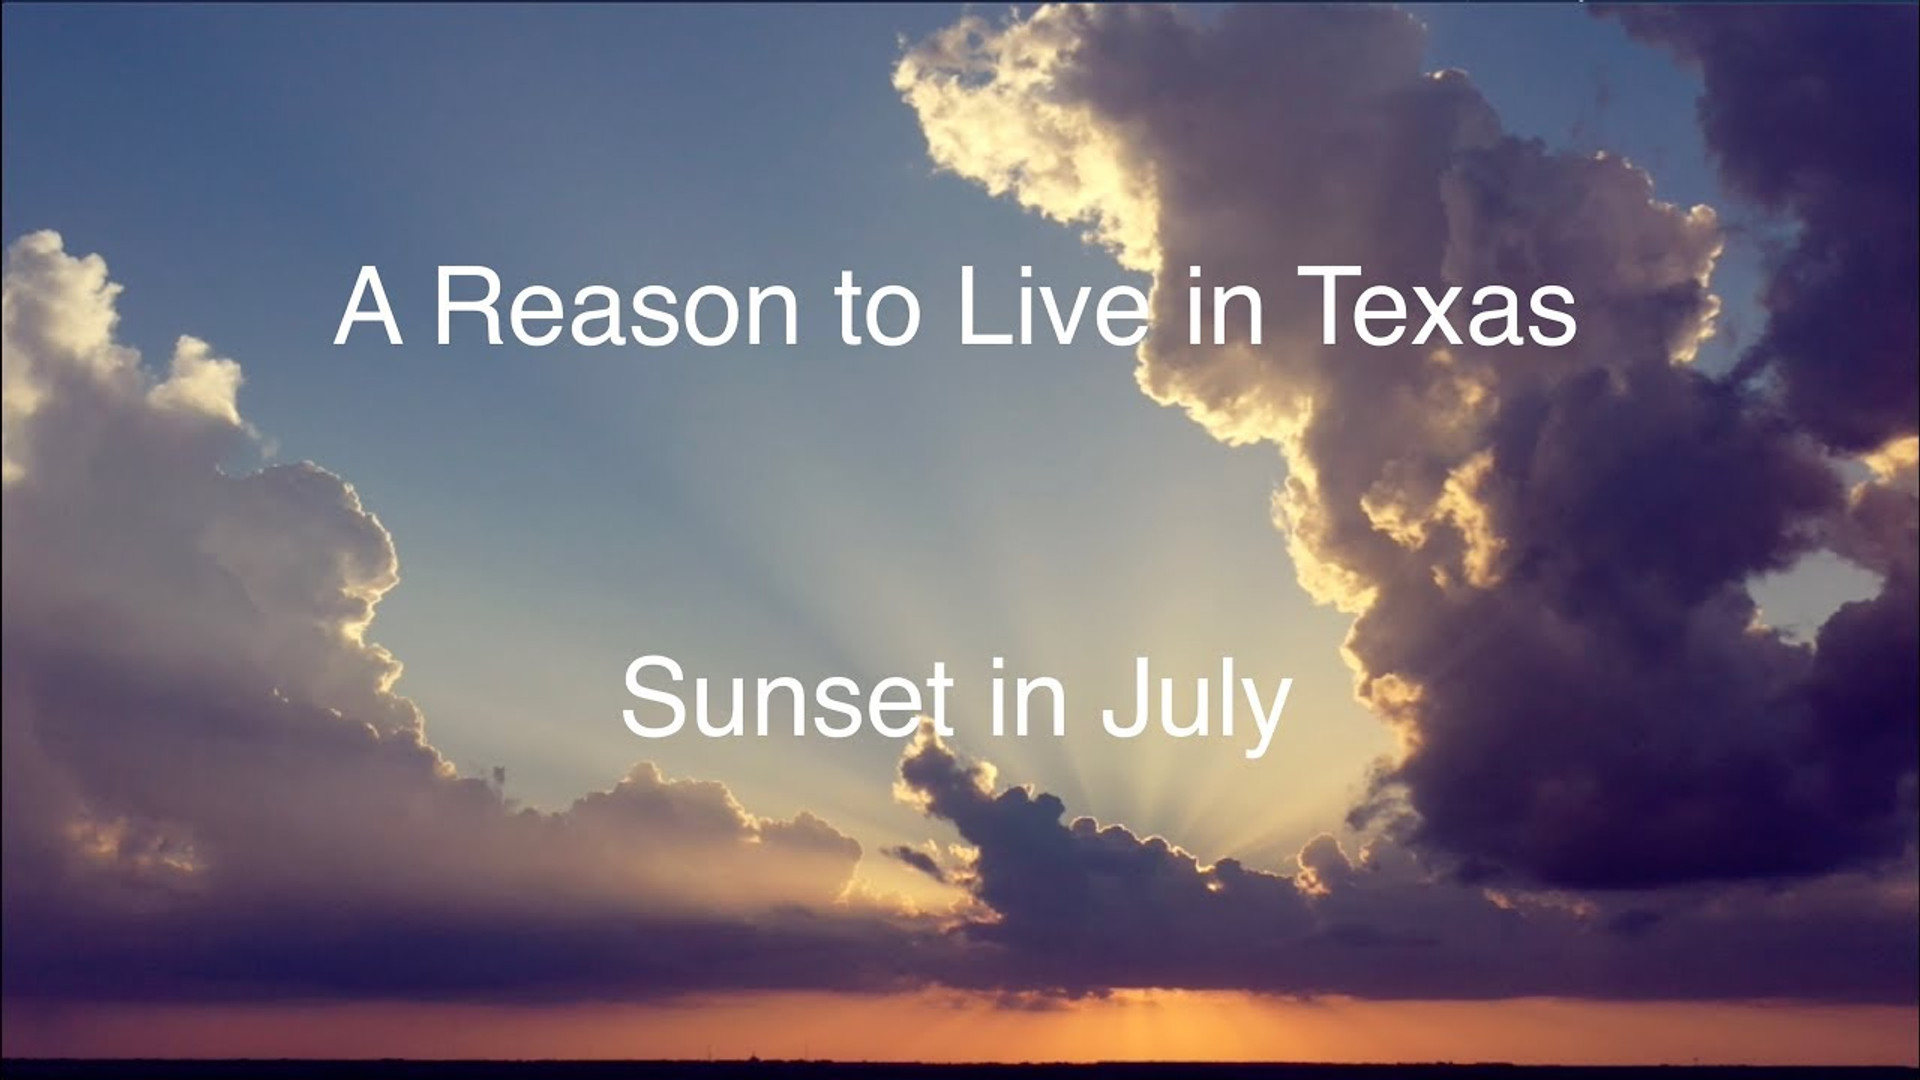 Sunset in July - a Reason to Live in Texas